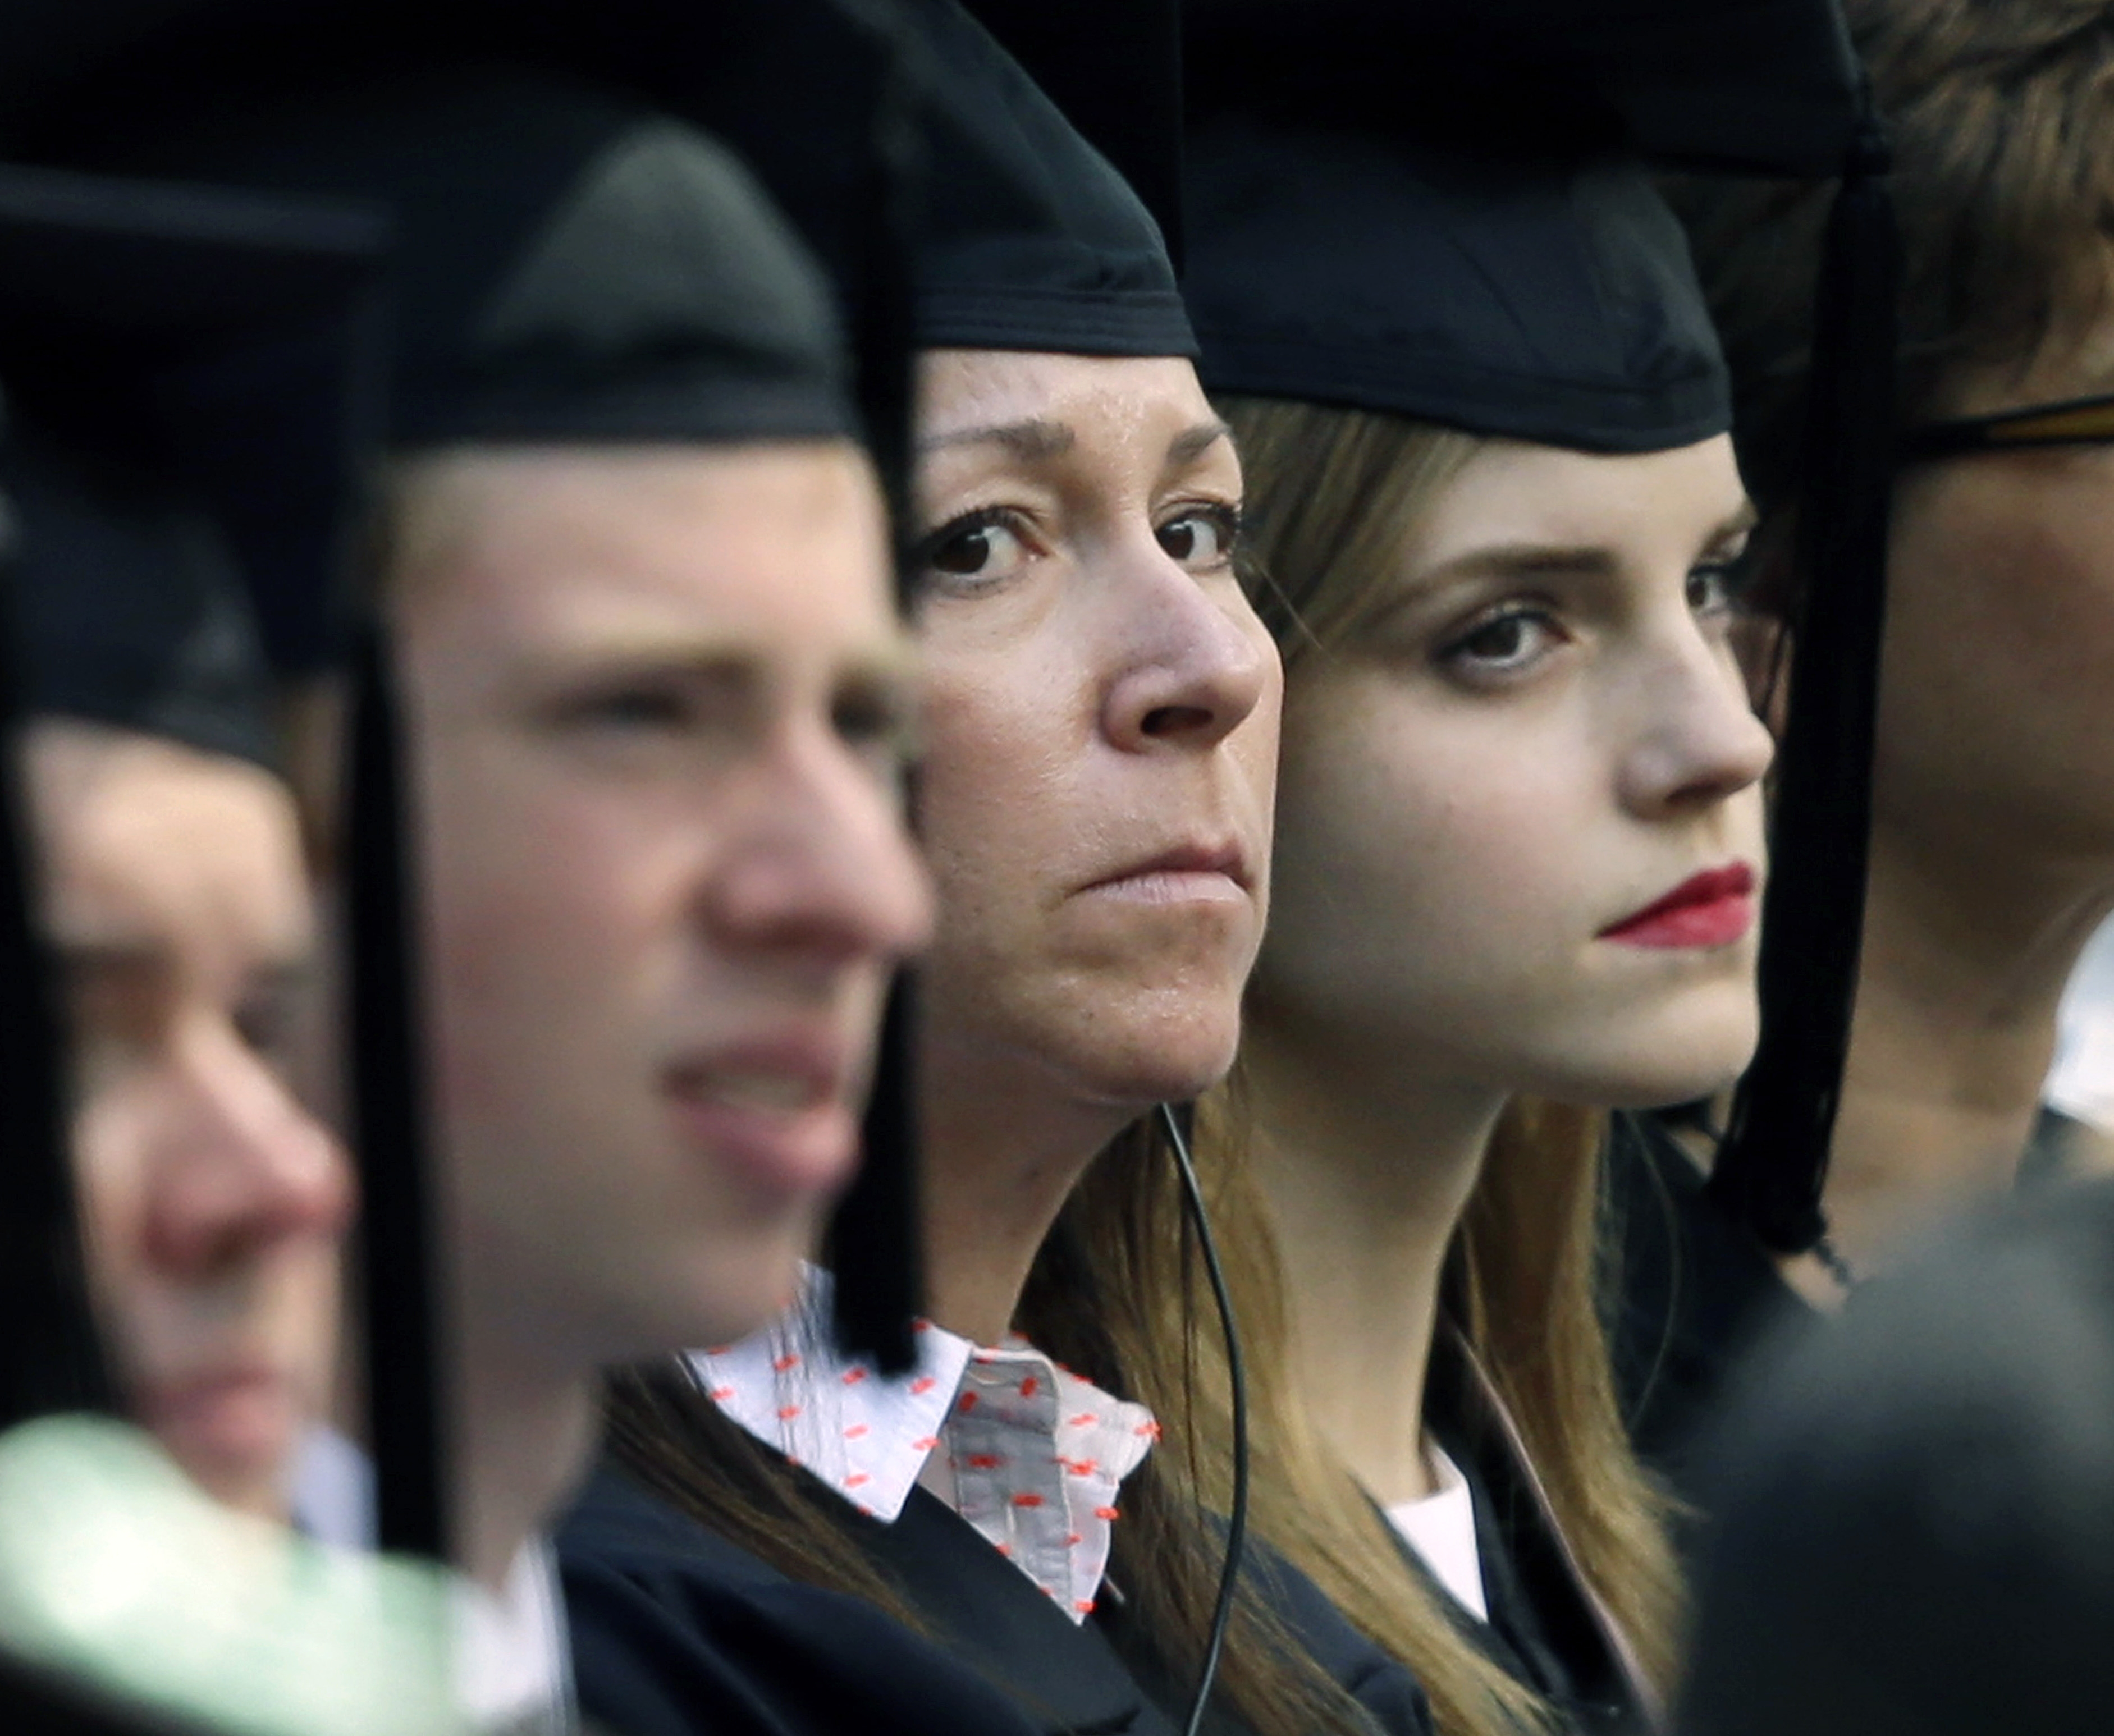 When actress Emma Watson, right, sat with fellow grads at Brown University's commencement Sunday, she was accompanied by an undercover armed guard, at left.